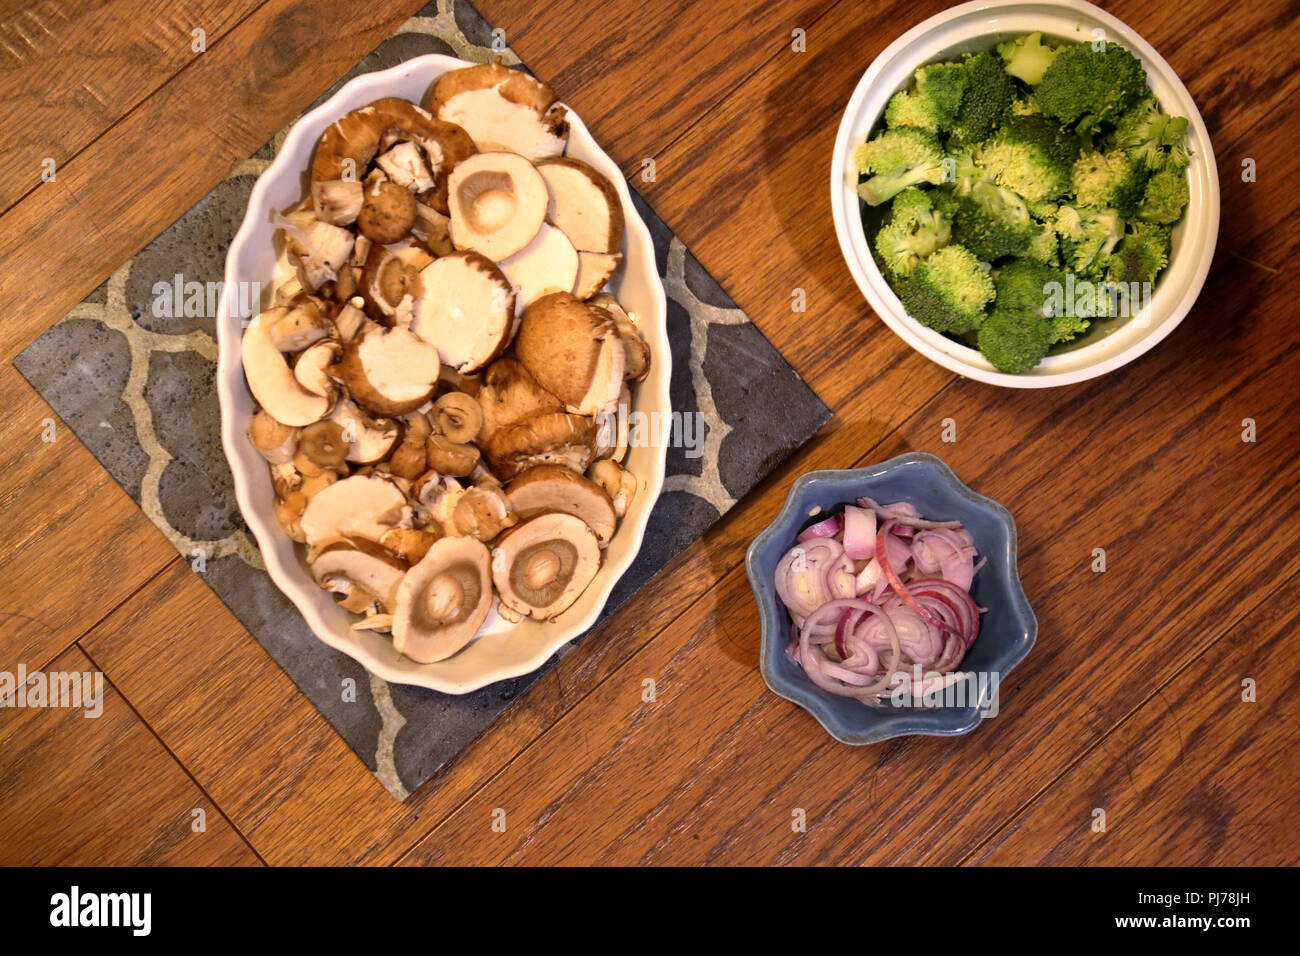 Sliced mushrooms, sliced red onion, and broccoli ingredients ready to add to a fresh supper dish and cook Stock Photo